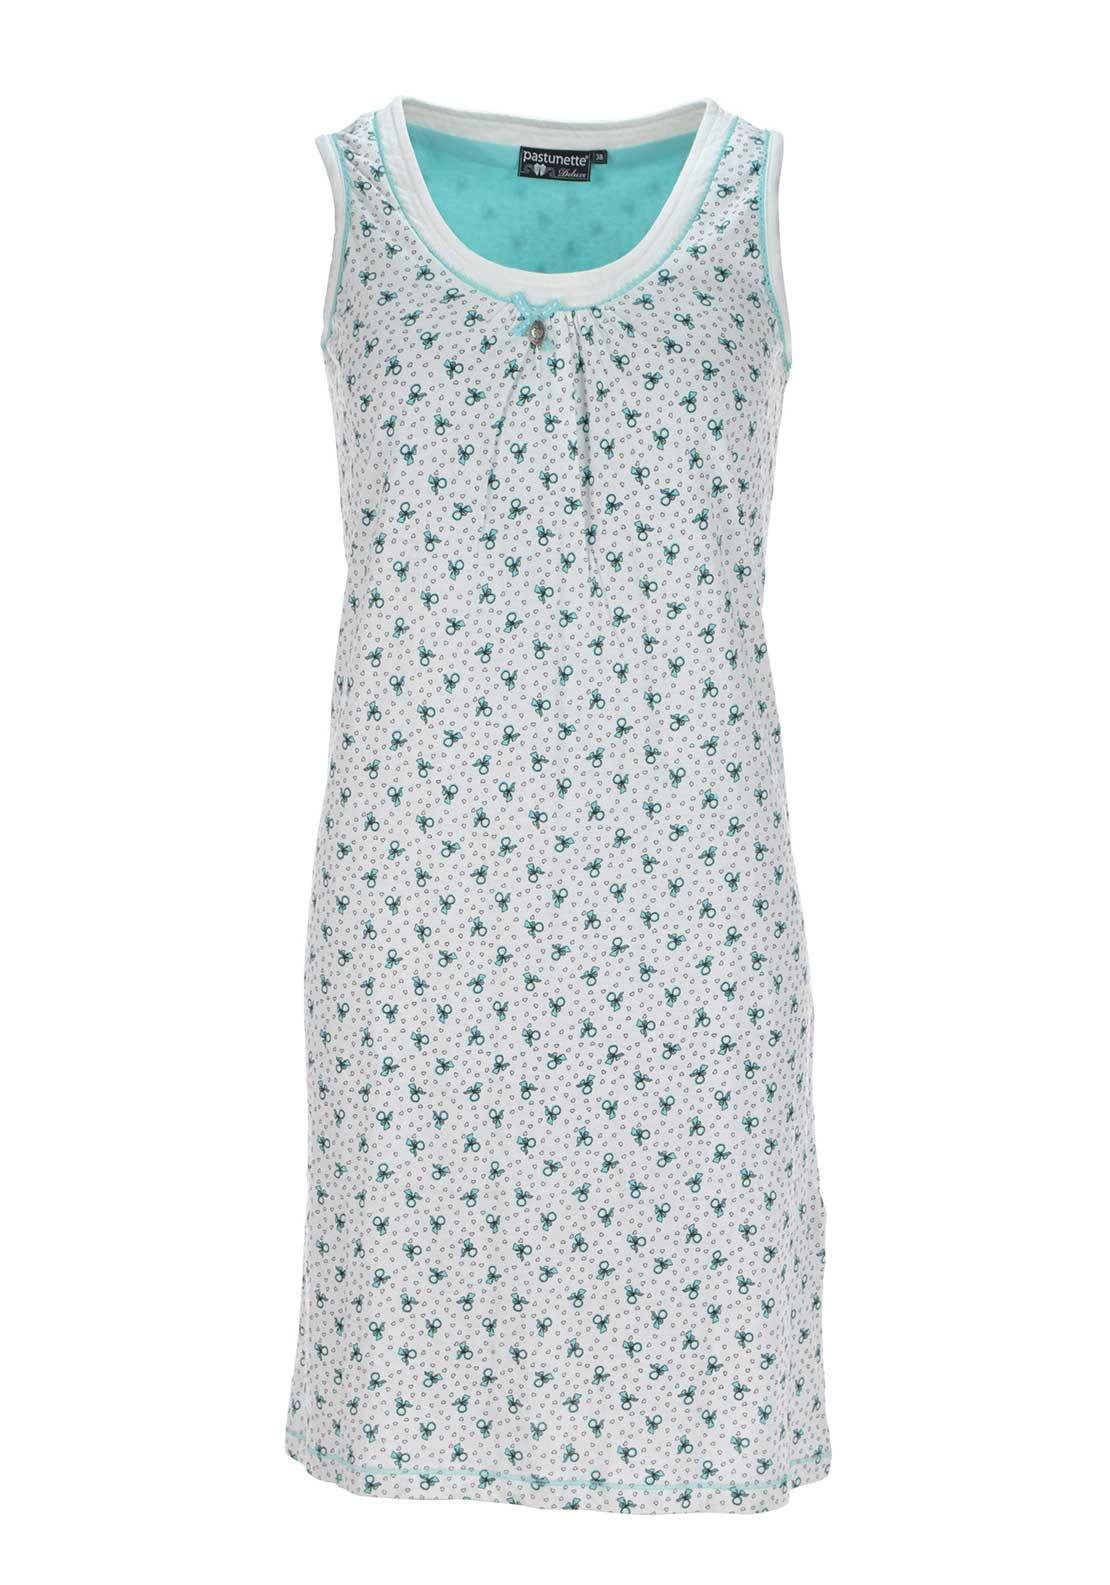 Pastunette Bow Print Sleeveless Nightdress, Cream Multi